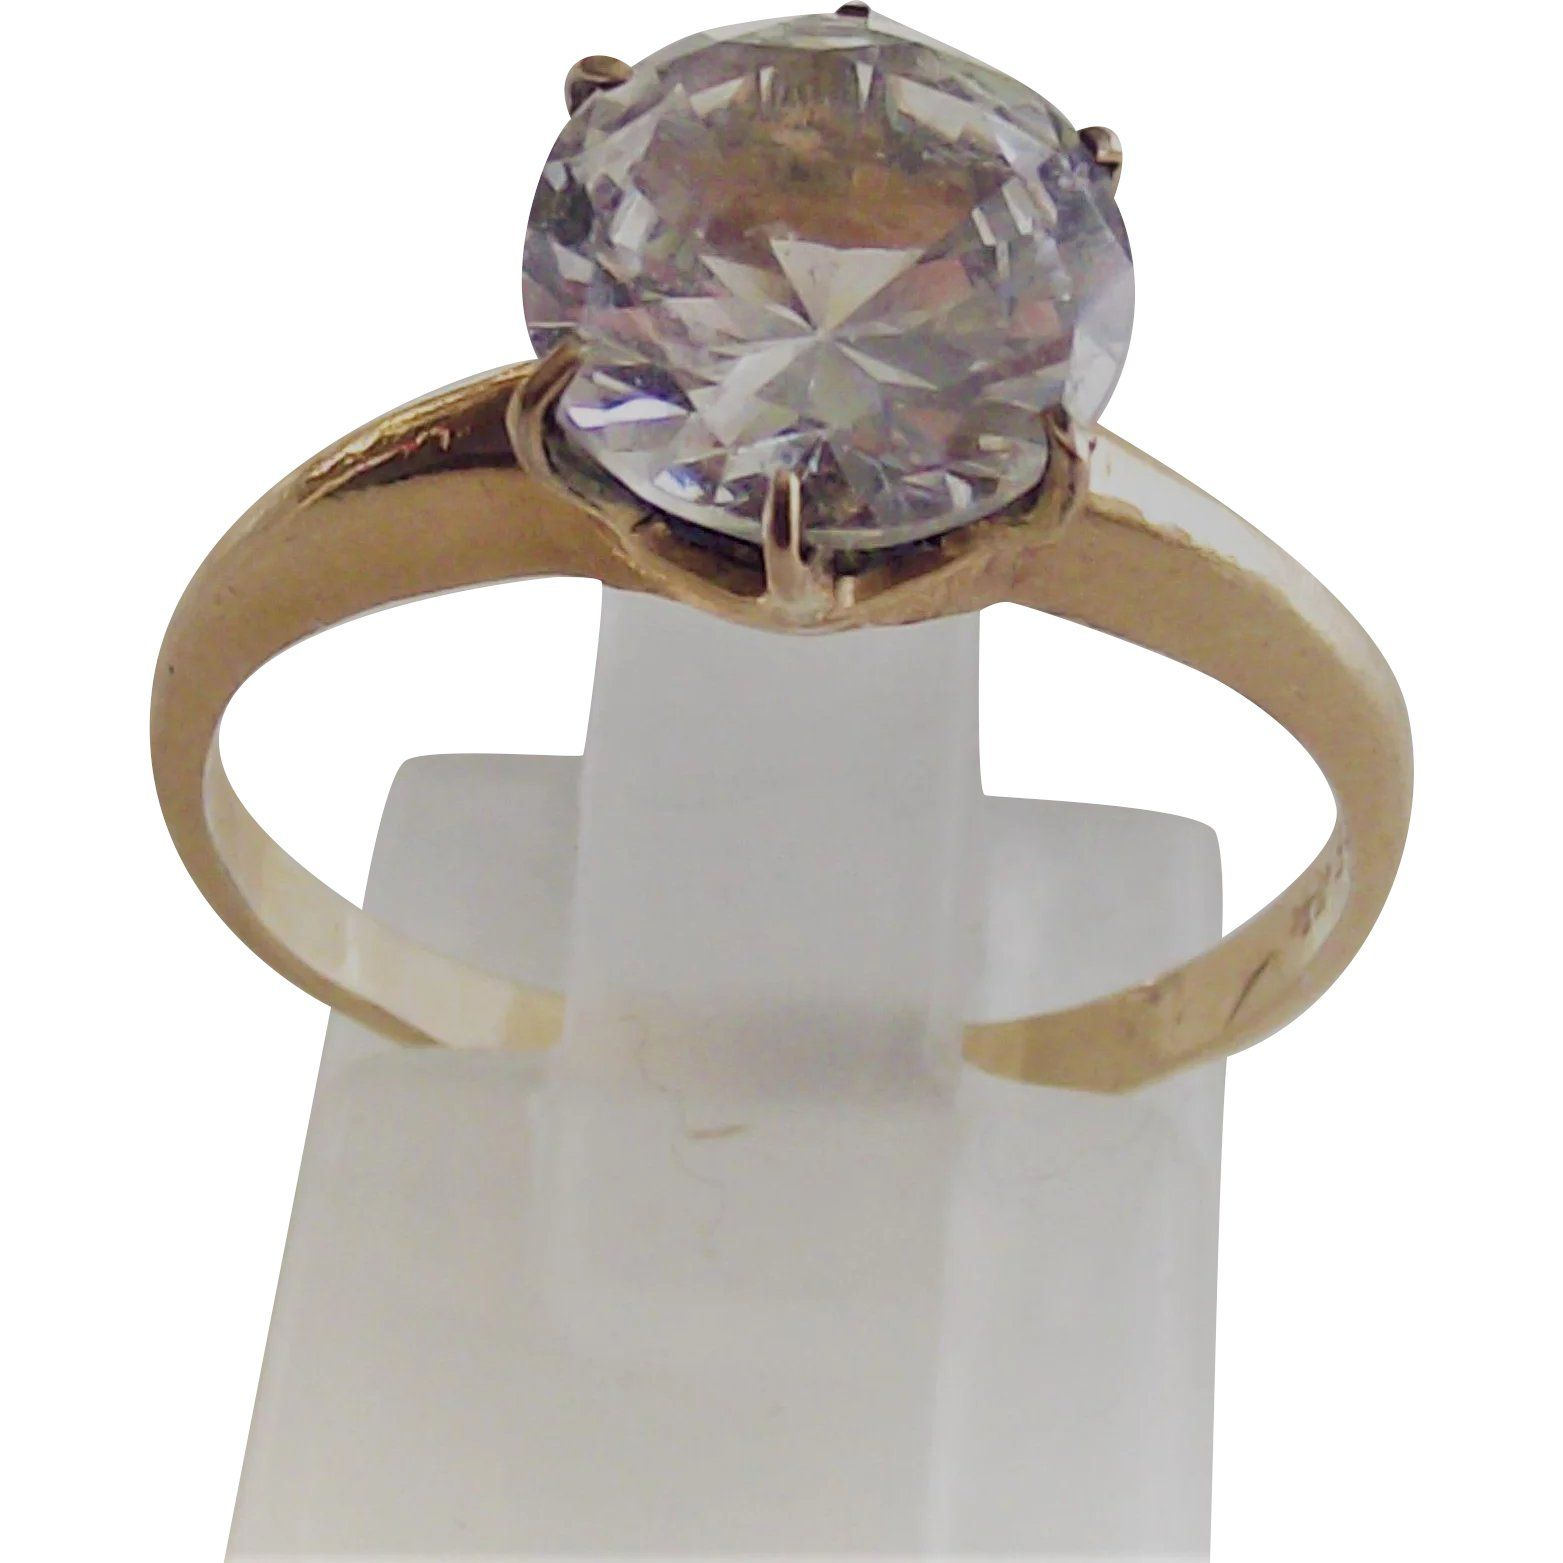 Size 8 1 2 Ring Gold Rings Jewelry Rings 10kt Gold